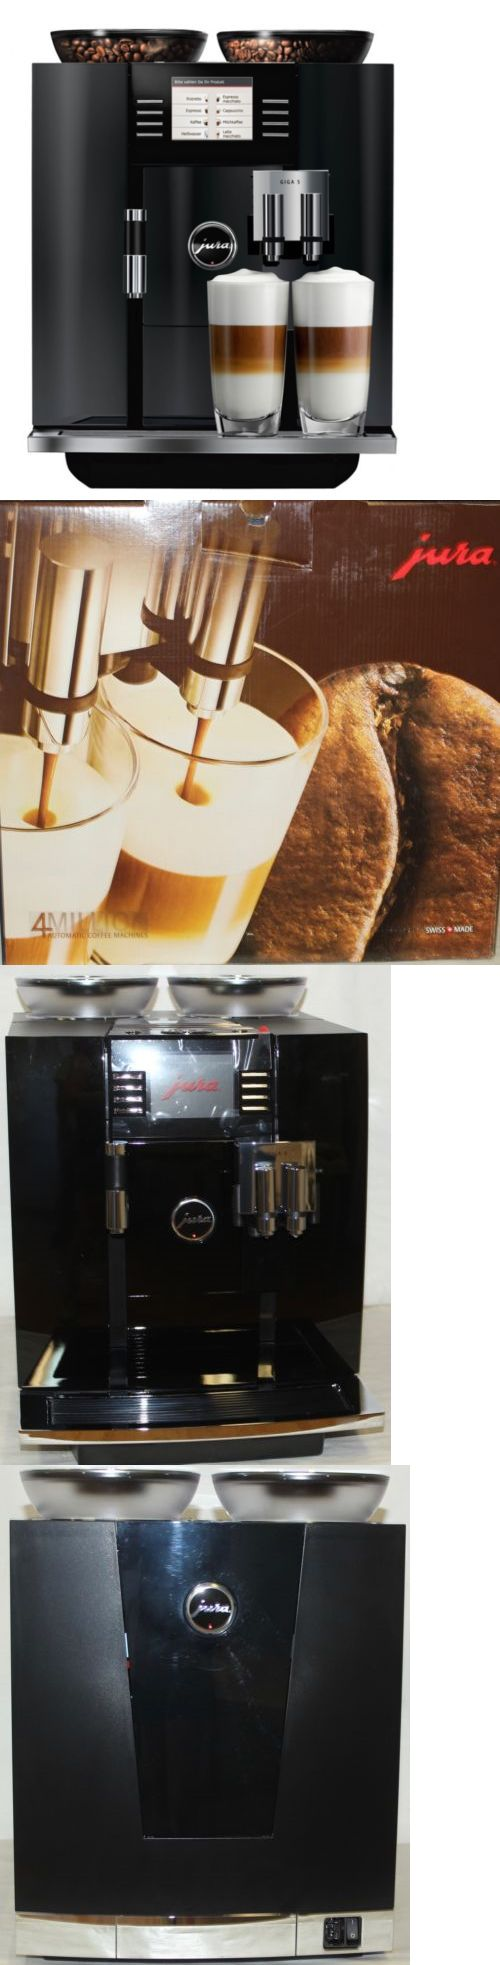 Coffee Makers Specialty 177752: New Jura Giga 5 Piano Black Espresso Coffee Maker Machine Automatic 15066 -> BUY IT NOW ONLY: $3799.99 on eBay!